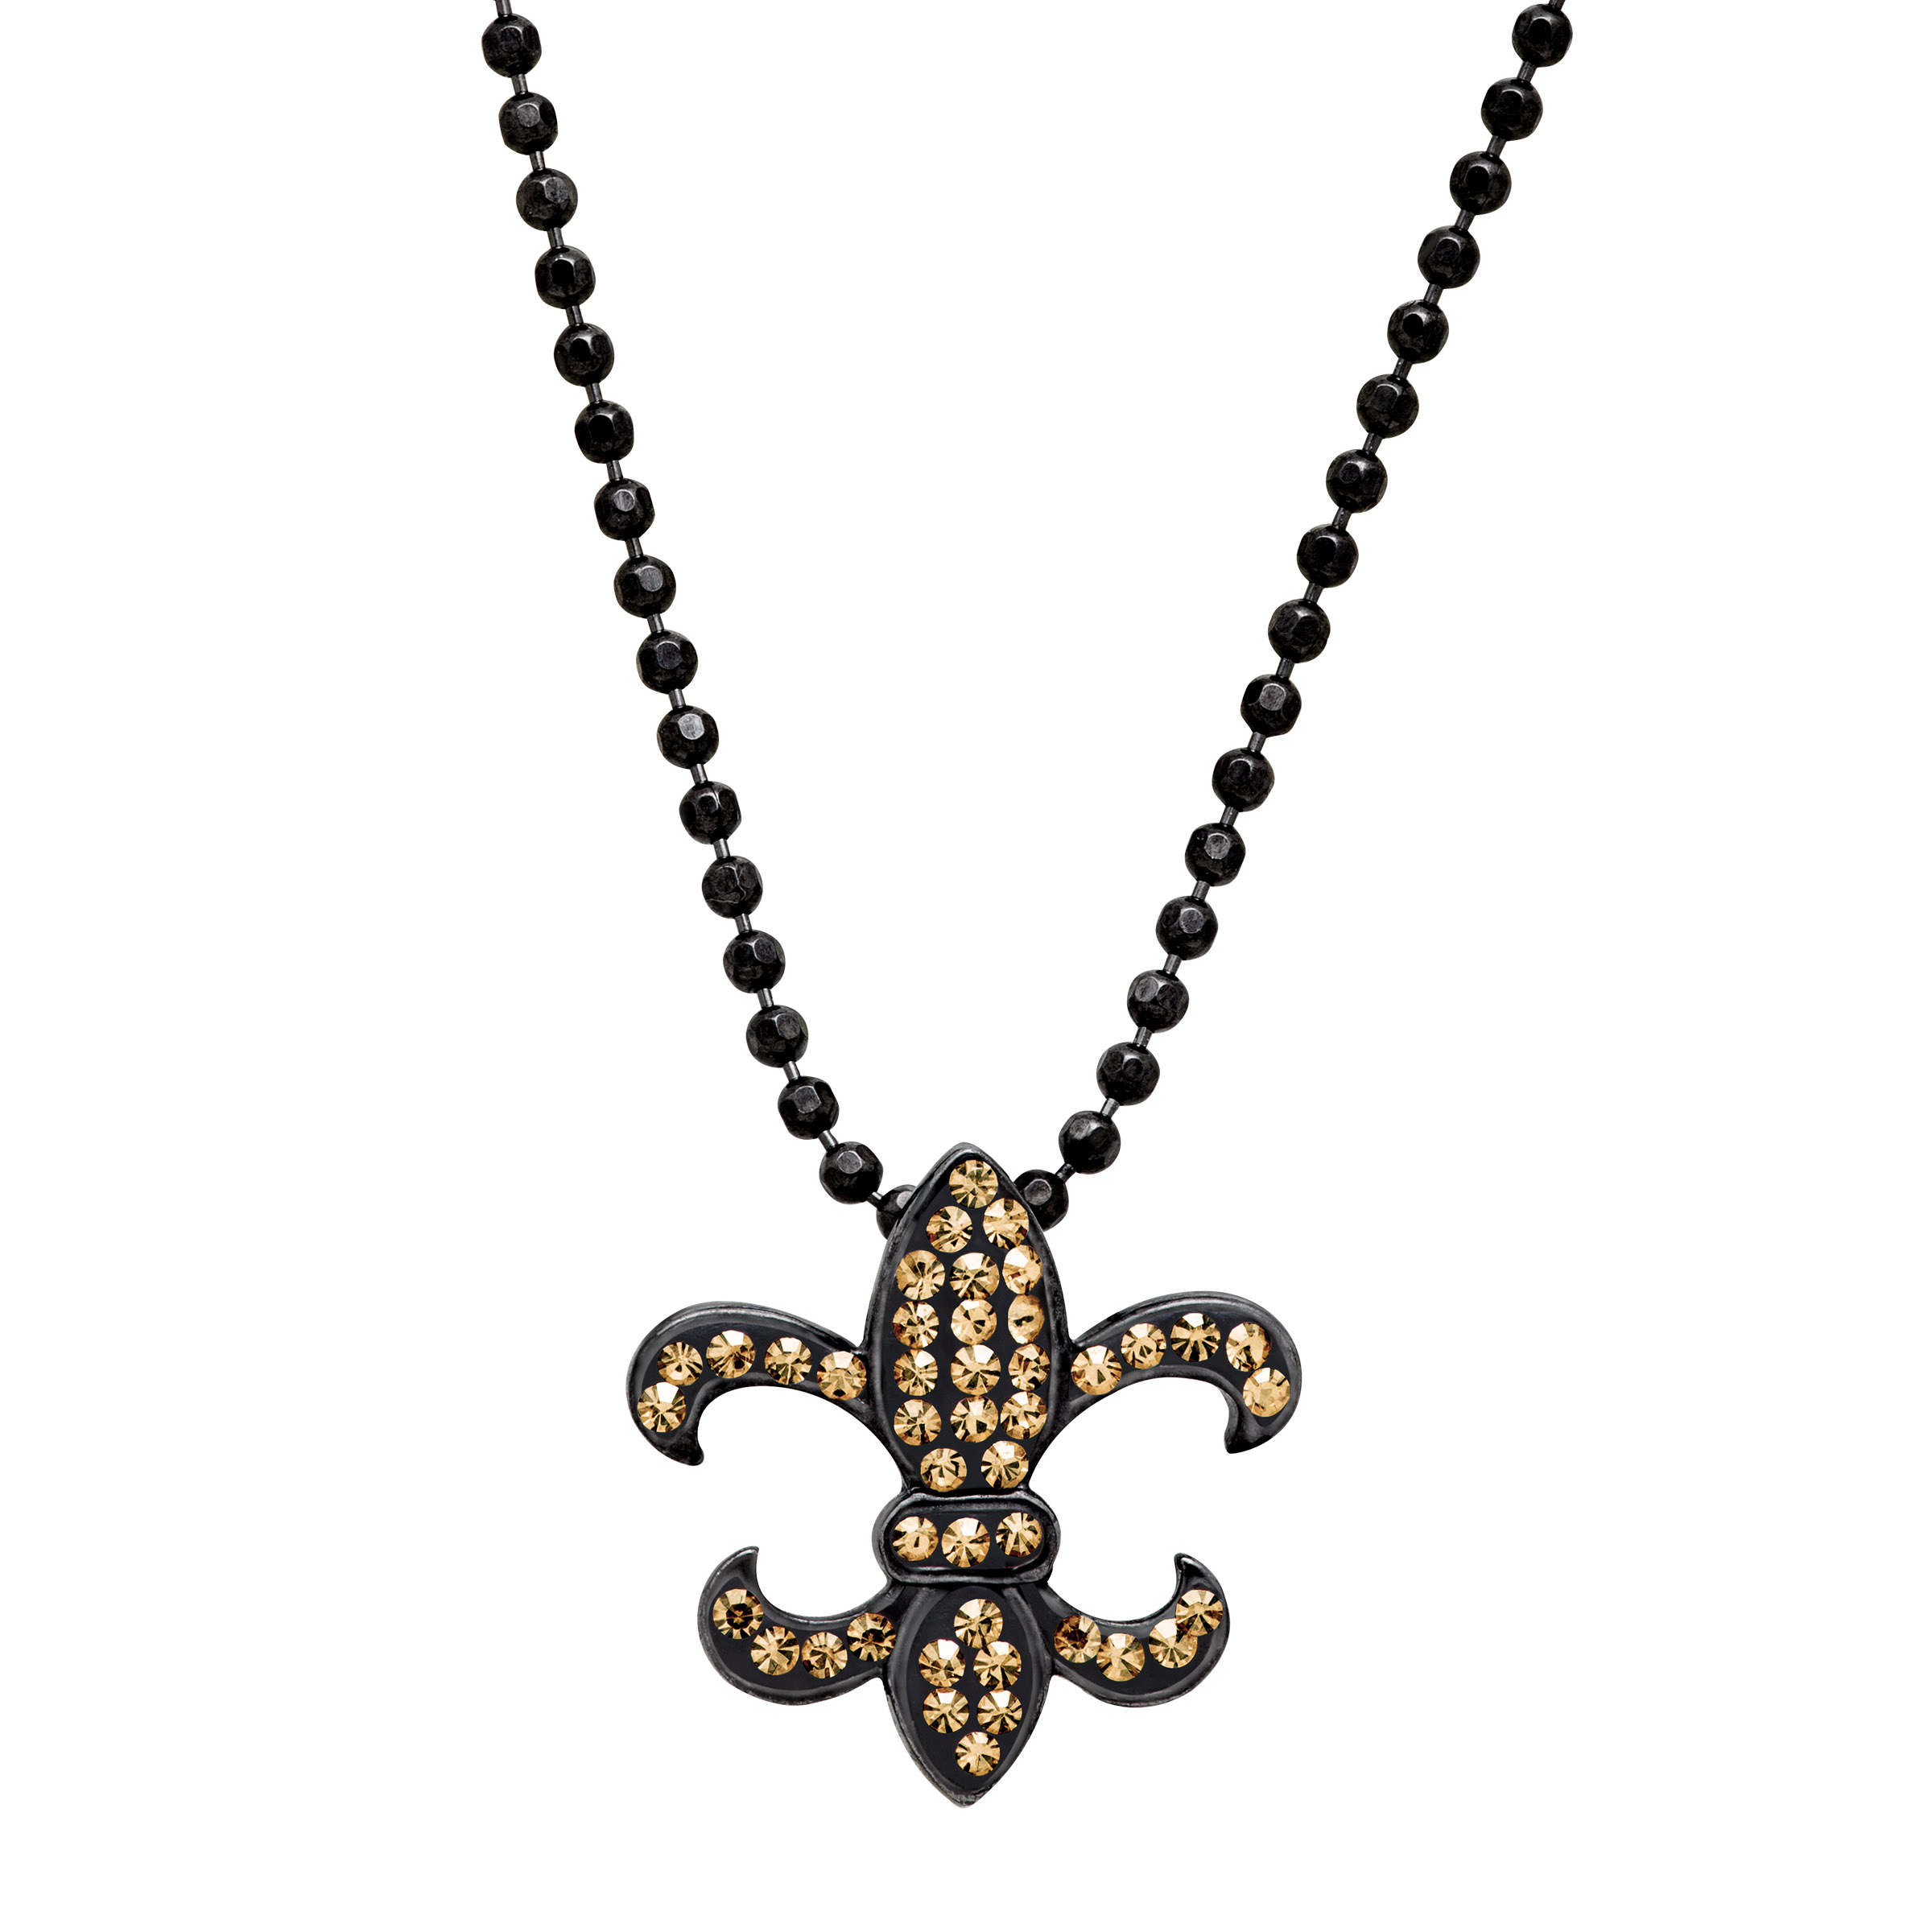 Luminesse Fleur-De-Lis Pendant Necklace with Swarovski Crystals in Black Rhodium-Plated Sterling Silver